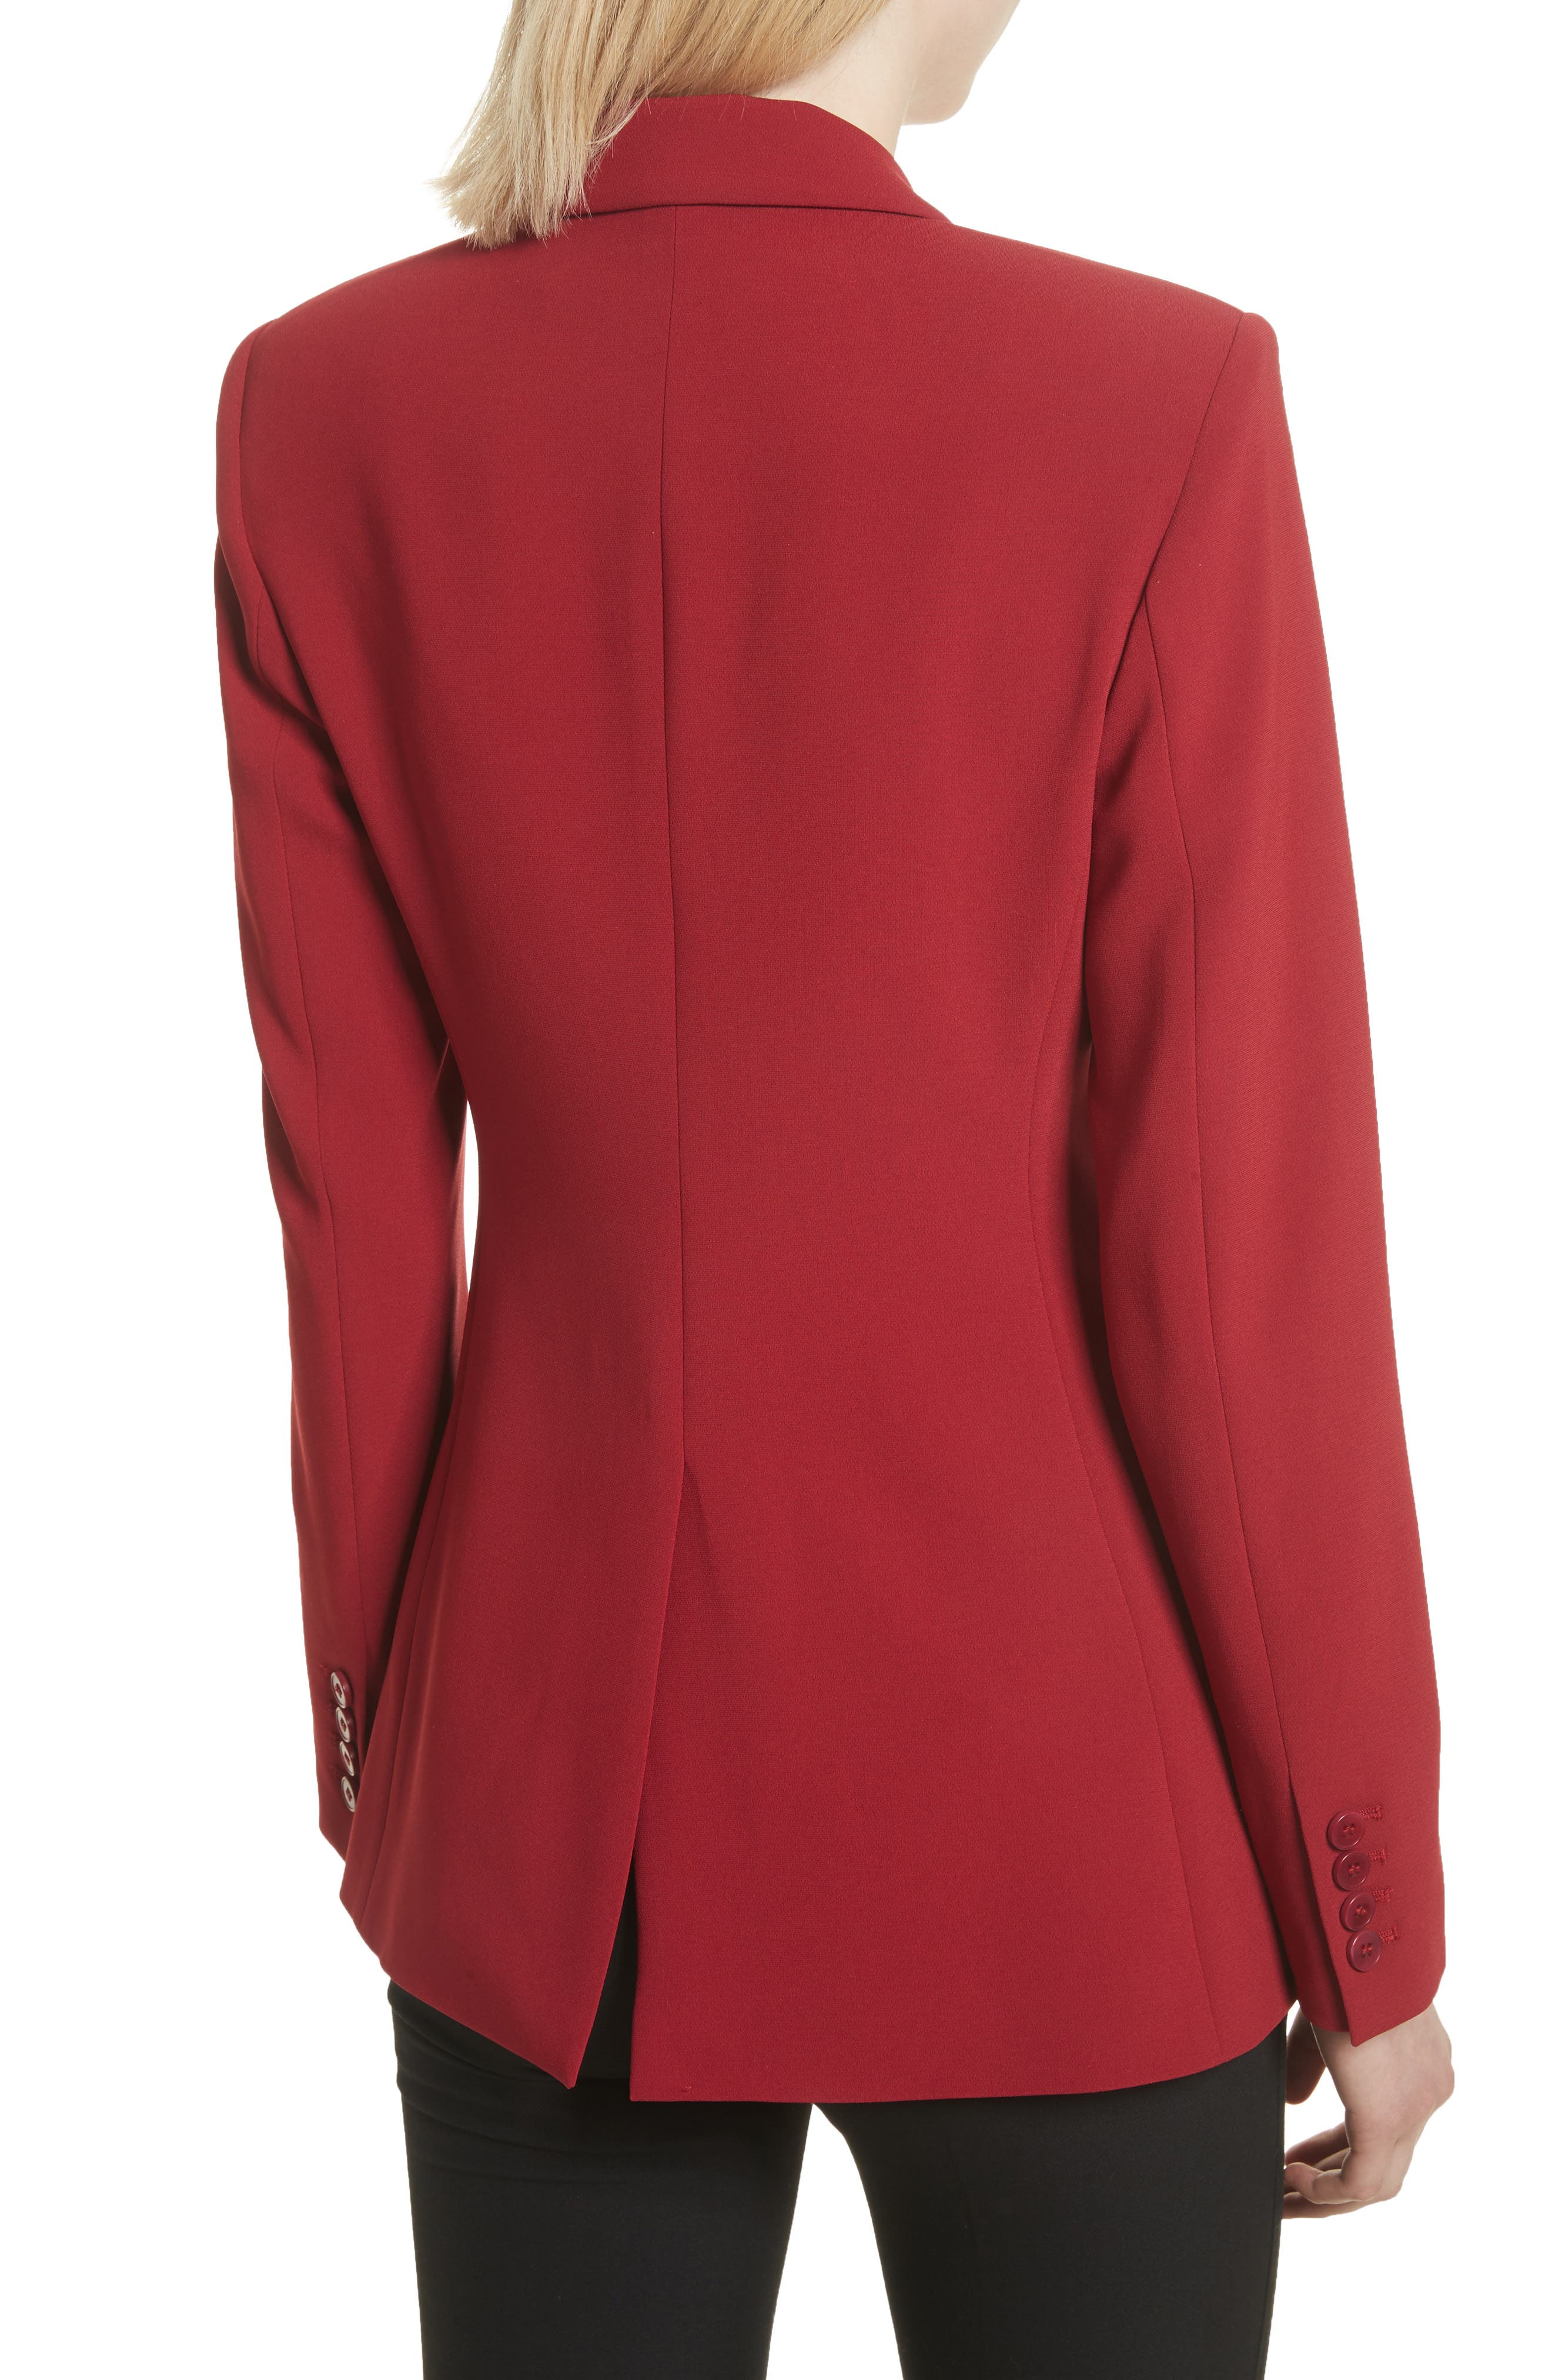 Admiral Crepe Power Jacket,                             Alternate thumbnail 2, color,                             Bright Raspberry